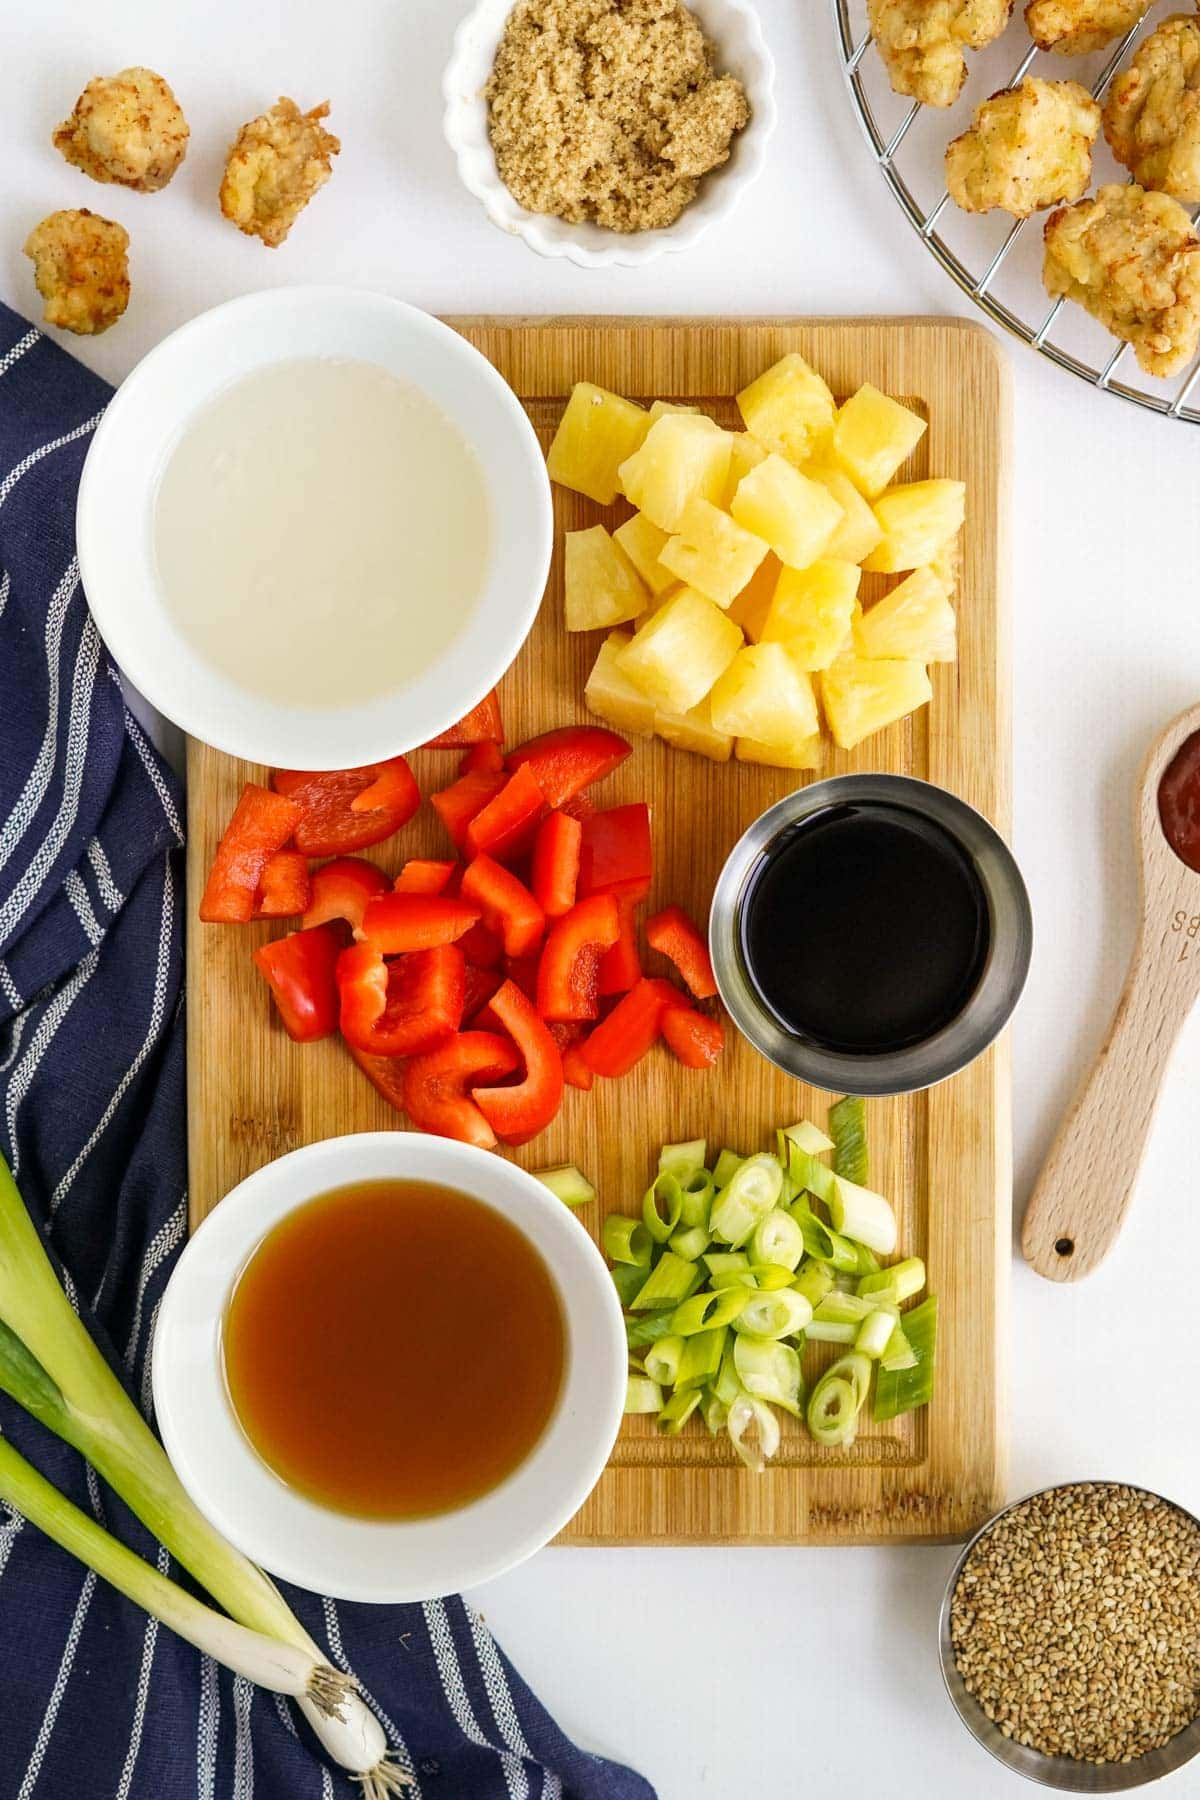 ingredients for making sweet and sour sauce